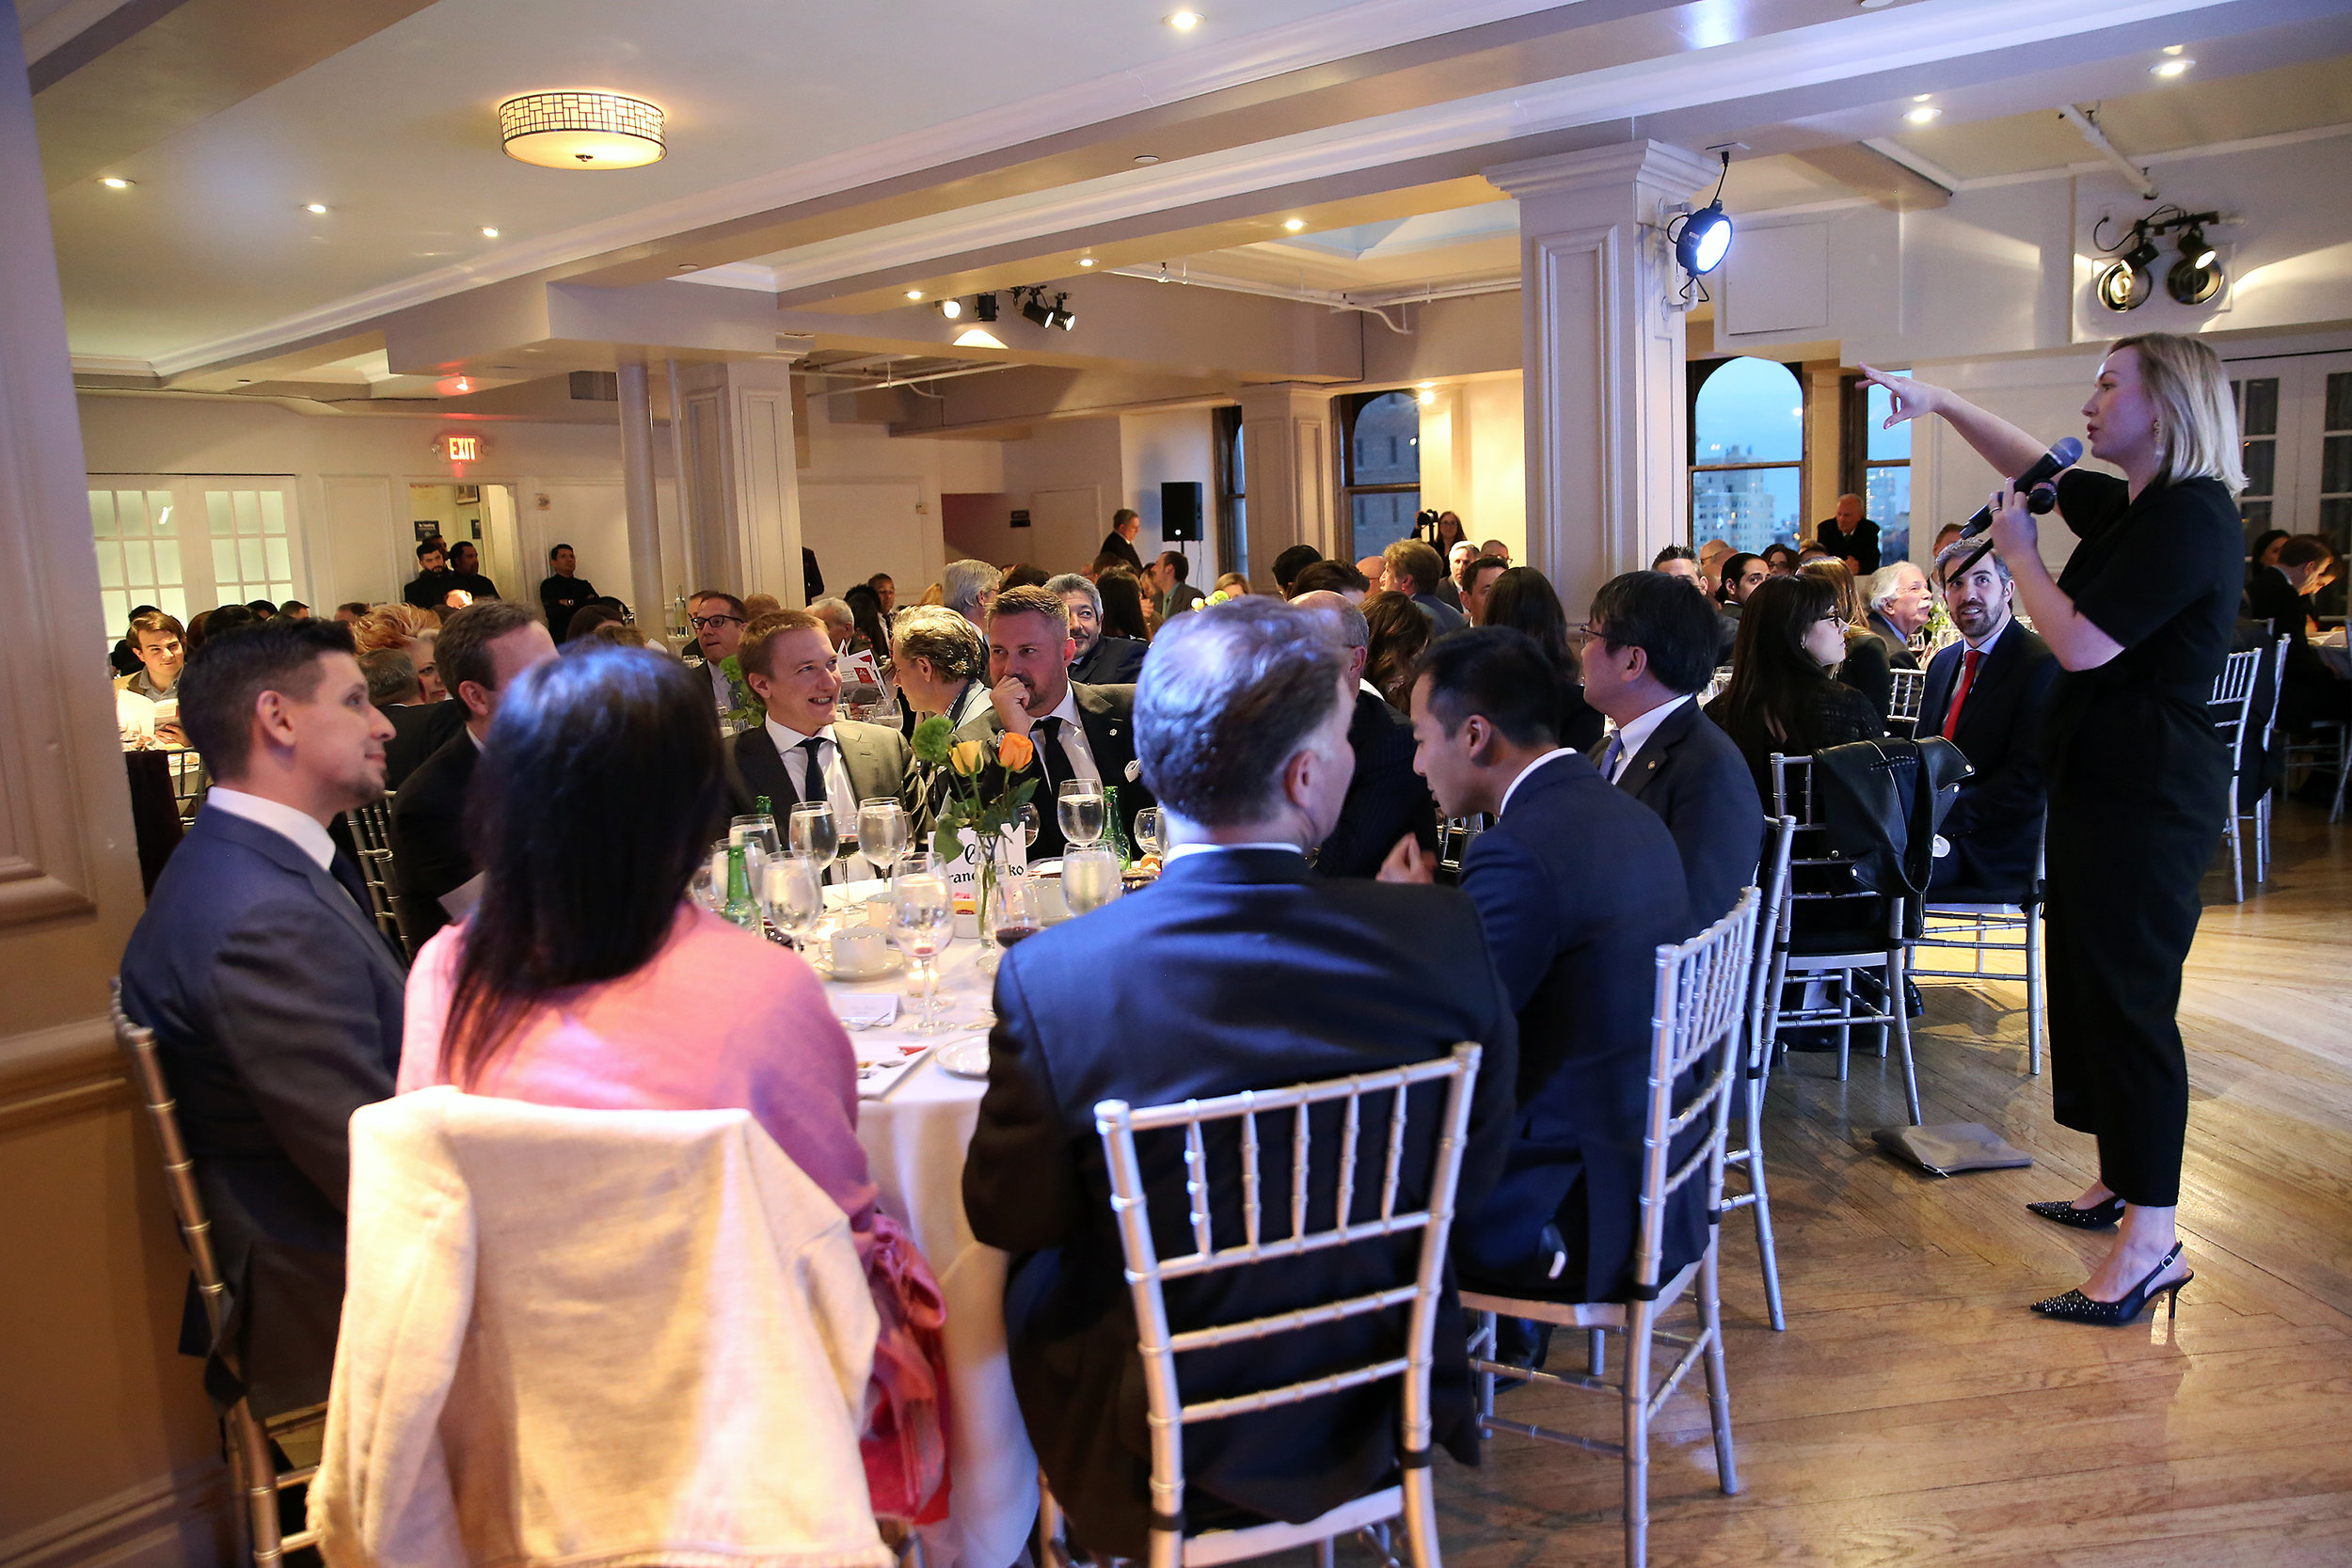 HSNY celebrated 153 years at the 2019 Gala & Charity Auction, raising more than $45,000 towards their mission of horological education.